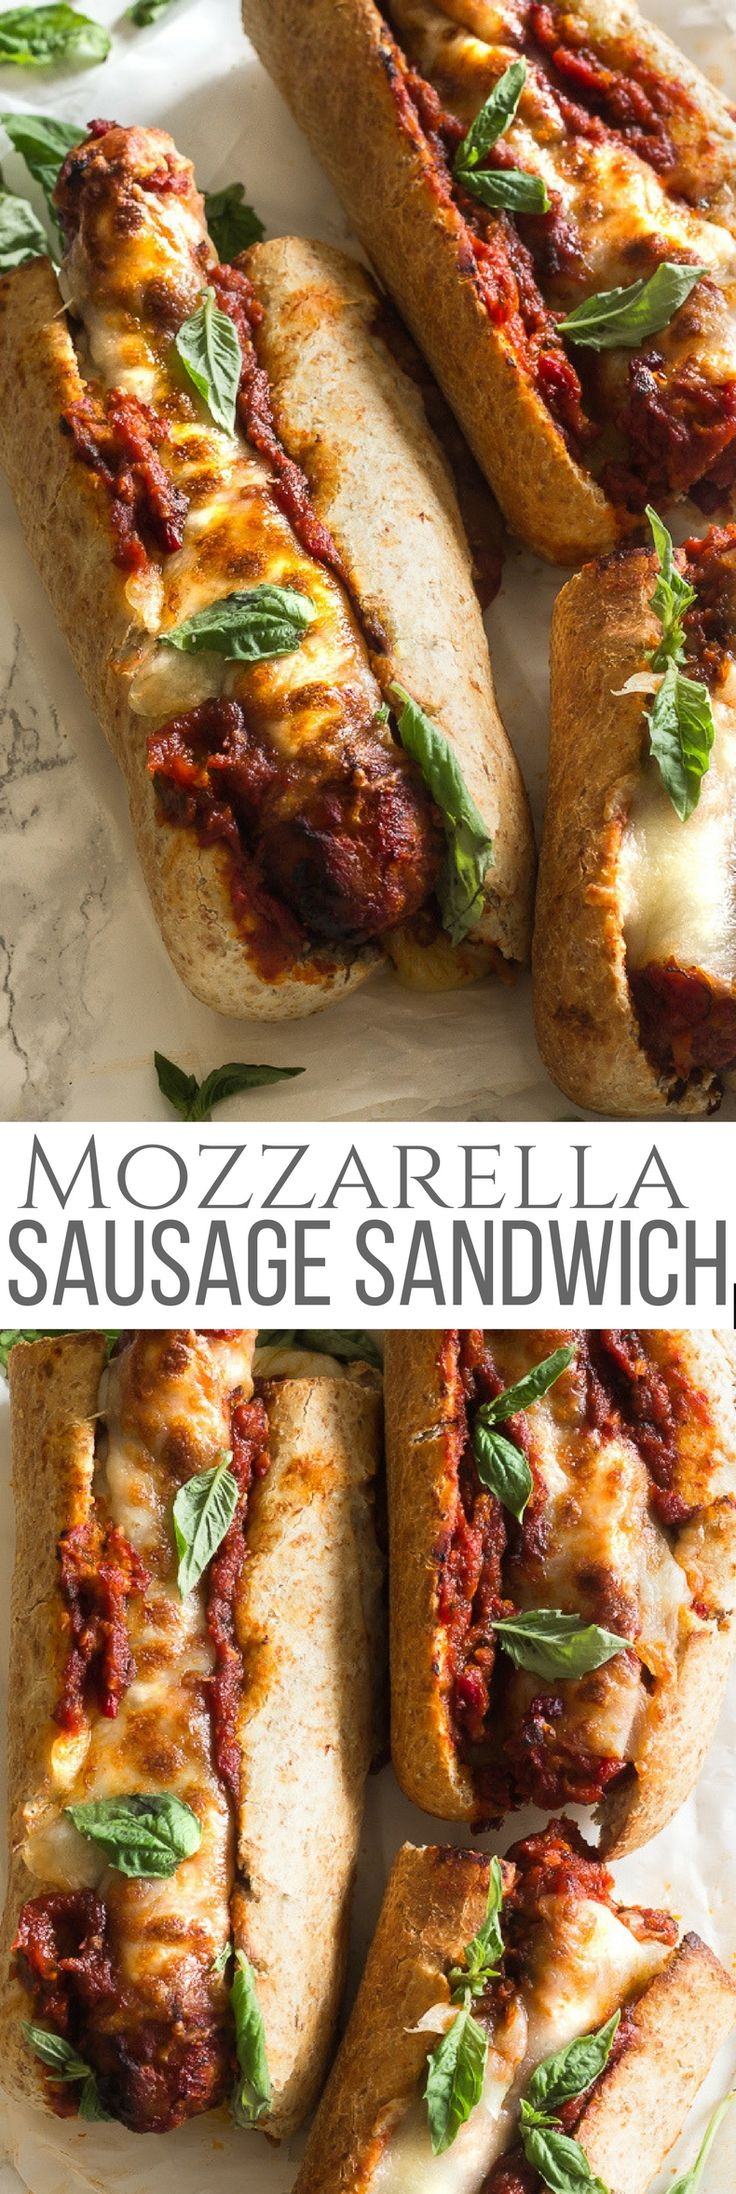 If you love chicken or meatball Parmesan subs then you'll love this time saving recipe! Mozzarella Italian sausage sandwich. No need to make meatballs or season the meat for this since the sausages come already seasoned. #ad #TeeterTreats #TeeterRecipes